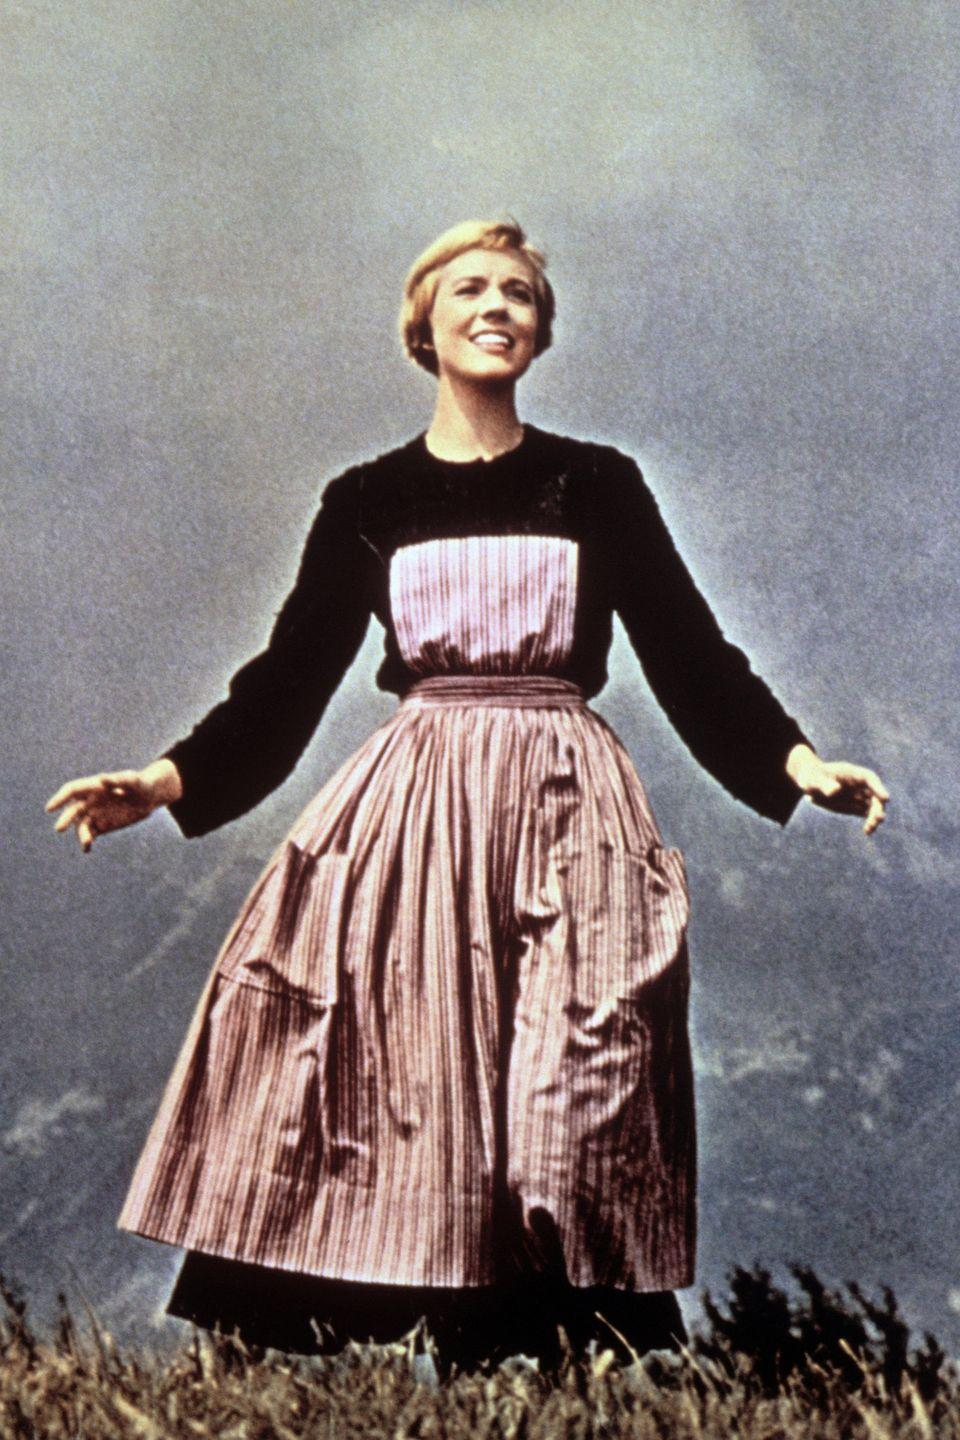 """<p>The hills came alive in the <em>Sound of Music</em>, and this iconic get-up Andrews wore during that famous number was <a href=""""http://www.marieclaire.co.uk/fashion/9-most-expensive-oscar-dresses-of-all-time-108690"""" rel=""""nofollow noopener"""" target=""""_blank"""" data-ylk=""""slk:sold"""" class=""""link rapid-noclick-resp"""">sold</a> for over 1.5 million dollars. </p>"""